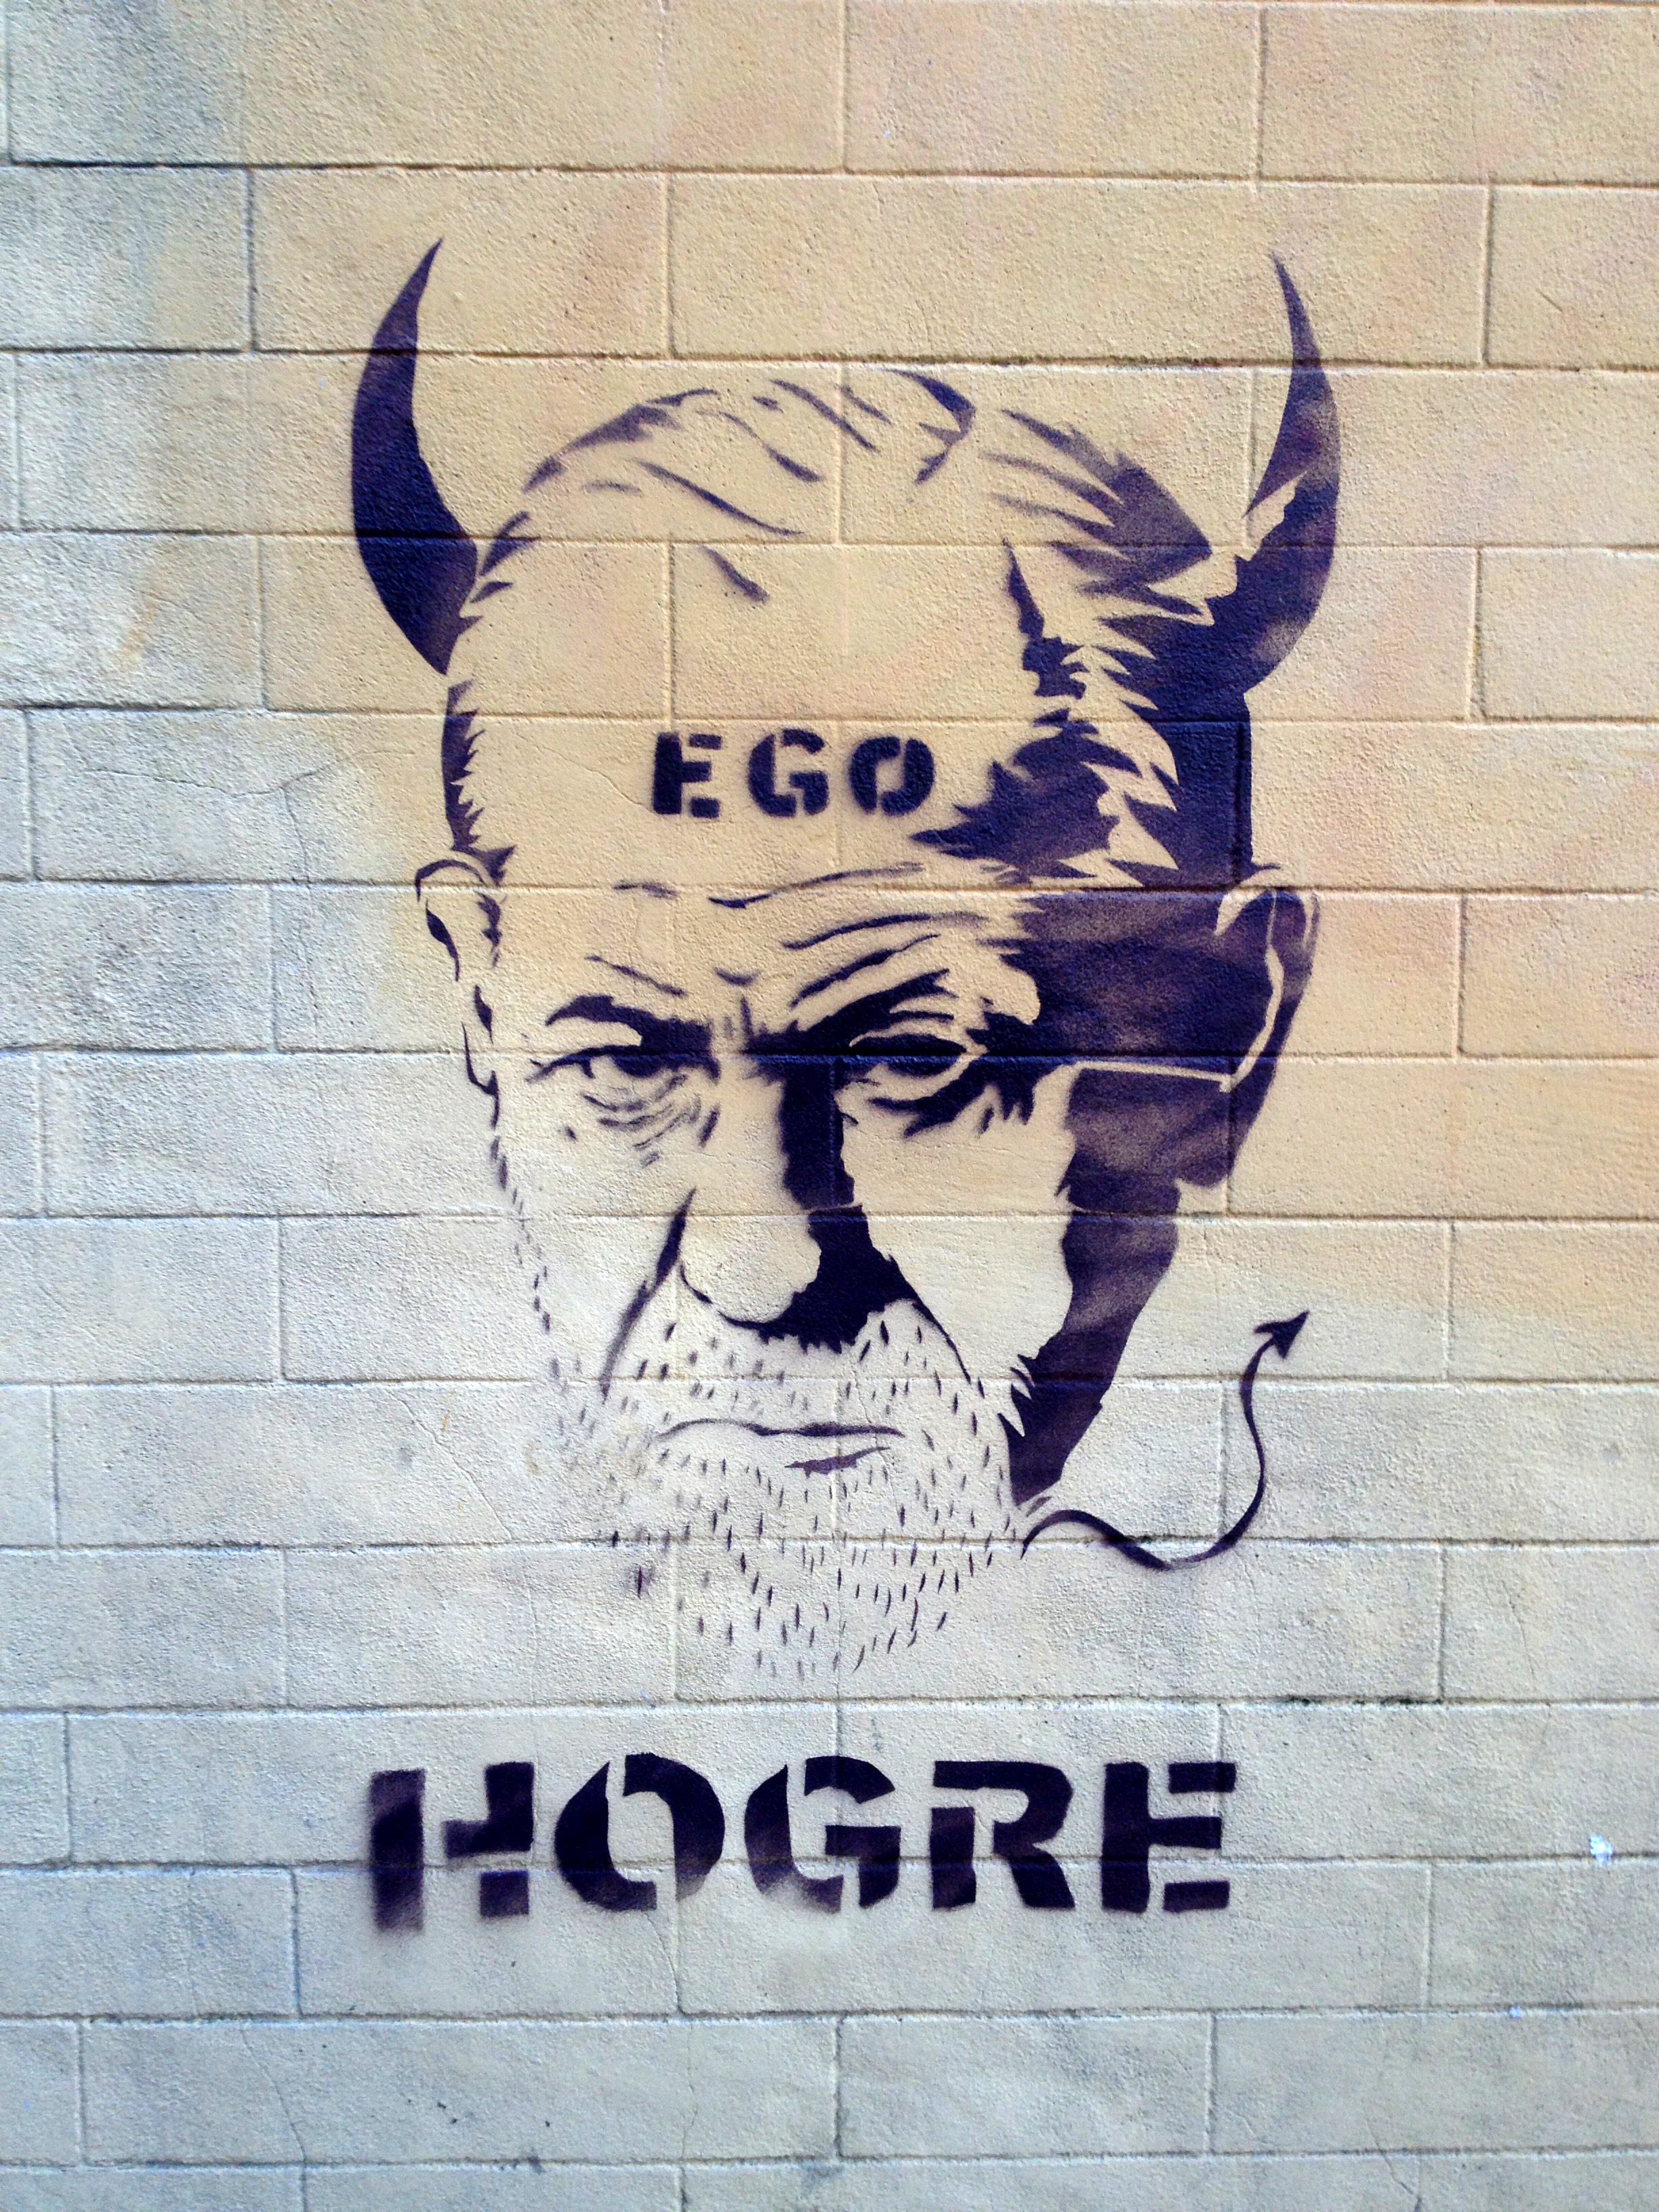 """Sergio is shown this picture from a smartphone. Hogre is the pseudonym of a street artist active in Rome.For more pictures see  here and  here .         0   0   1   Göteborgs universitet   14.0                      Normal   0       21       false   false   false     SV   JA   X-NONE                                                                                                                                                                                                                                                                                                                                                                               /* Style Definitions */ table.MsoNormalTable {mso-style-name:""""Normal tabell""""; mso-tstyle-rowband-size:0; mso-tstyle-colband-size:0; mso-style-noshow:yes; mso-style-priority:99; mso-style-parent:""""""""; mso-padding-alt:0cm 5.4pt 0cm 5.4pt; mso-para-margin:0cm; mso-para-margin-bottom:.0001pt; mso-pagination:widow-orphan; font-size:10.0pt; font-family:""""Times New Roman"""";}"""